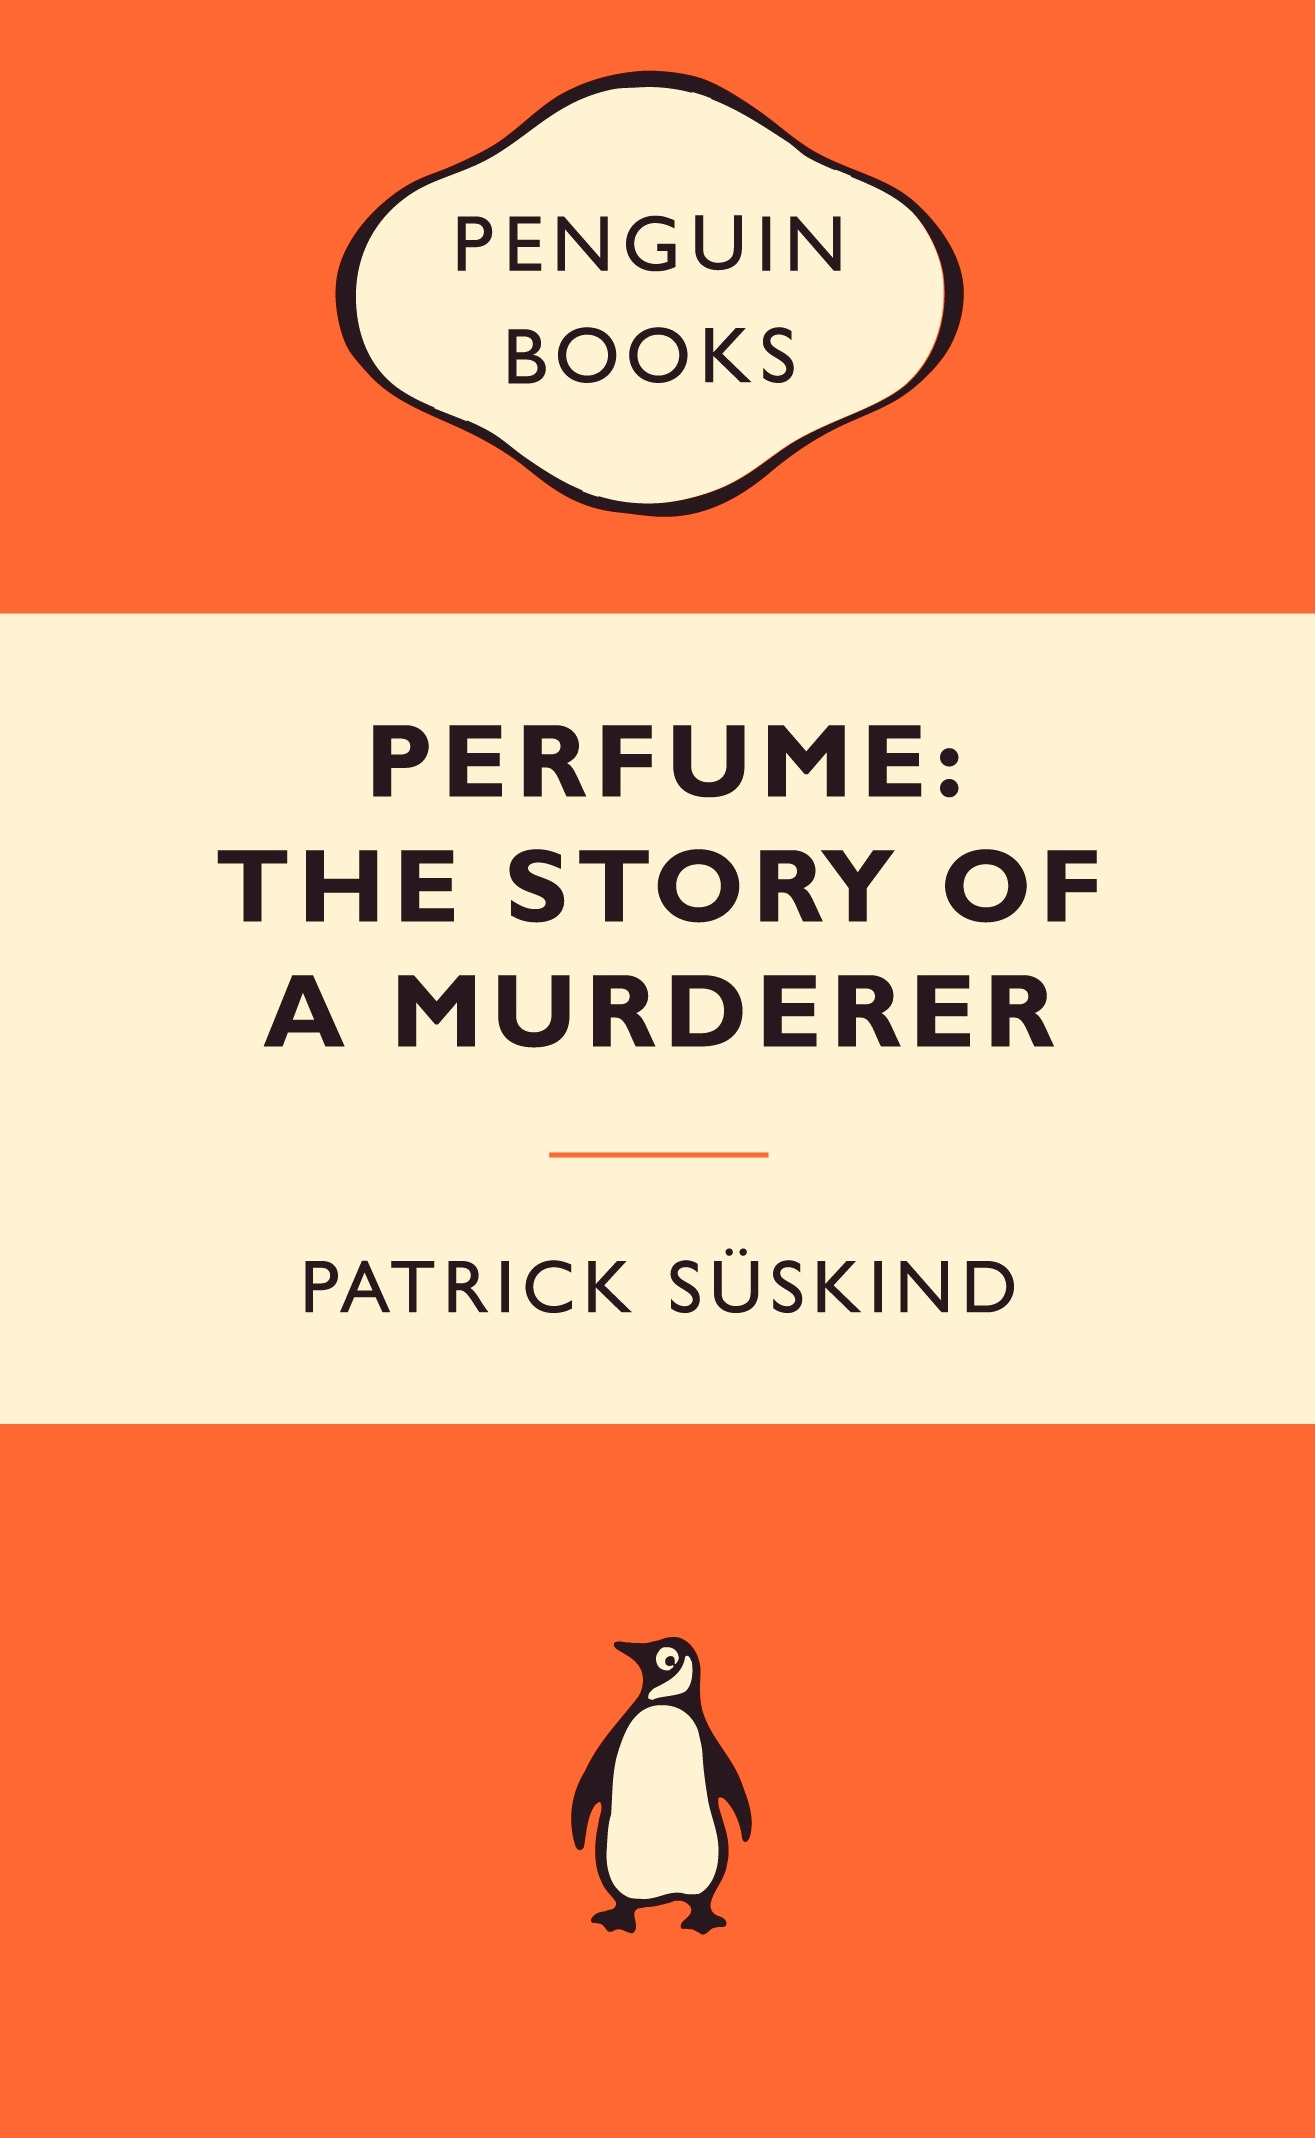 patrick suskind Patrick süskind was born in ambach, near munich, in 1949 he studied medieval and modern history at the university of munich his first play, the double bass, was written in 1980 and became an international success.